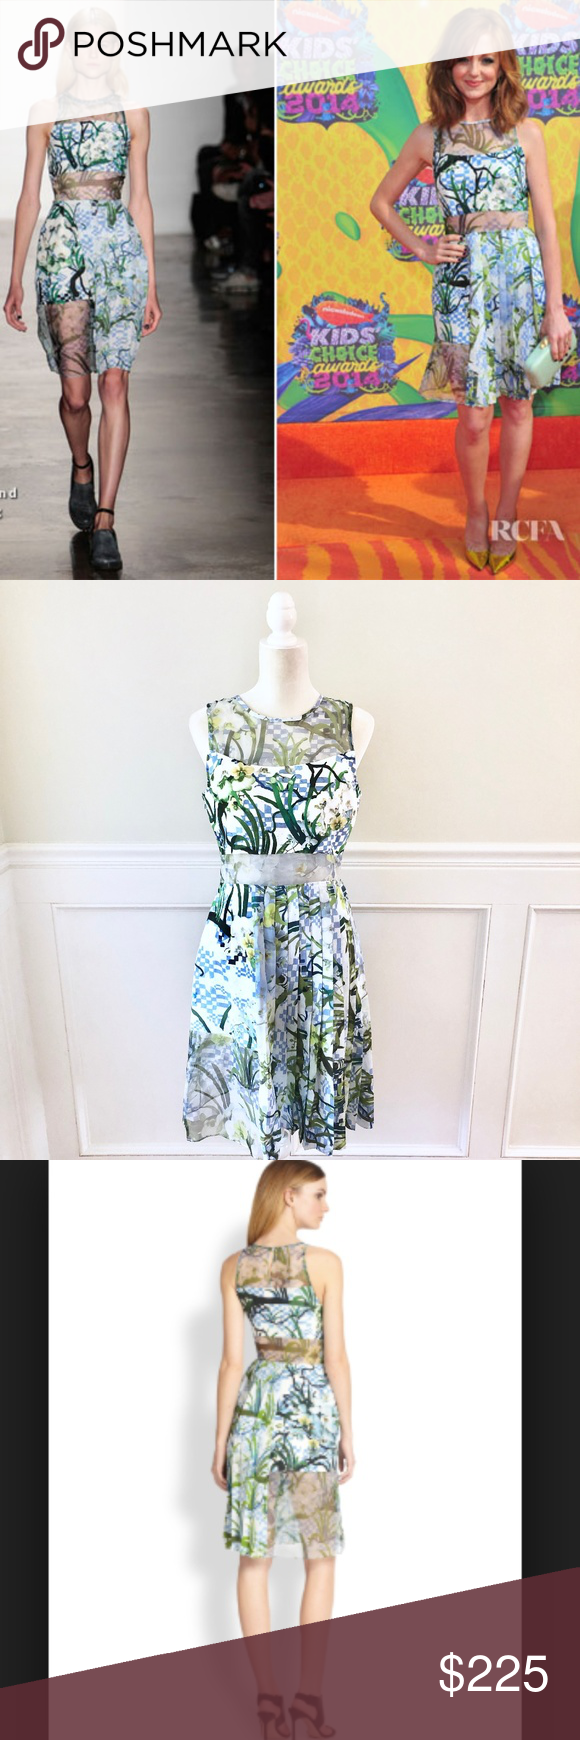 TIMO WEILAND Tabitha Silk Floral Dress Celeb Fave! Gorgeous silk dress by Timo Weiland. Feminine details like floral and pleats juxtapose with edgy mesh cutouts at neckline, midriff, and thigh. Perfect brand new condition. Blue/green/ivory. Lined.  Retail $595, sold out everywhere. This dress was featured in W Magazine (travel piece with Timo Weiland) and worn on the red carpet by Jayma Mays. Size 8 Bust 18 across Waist 15.5 across Shoulder to hem 38 Timo Weiland Dresses #wfaves